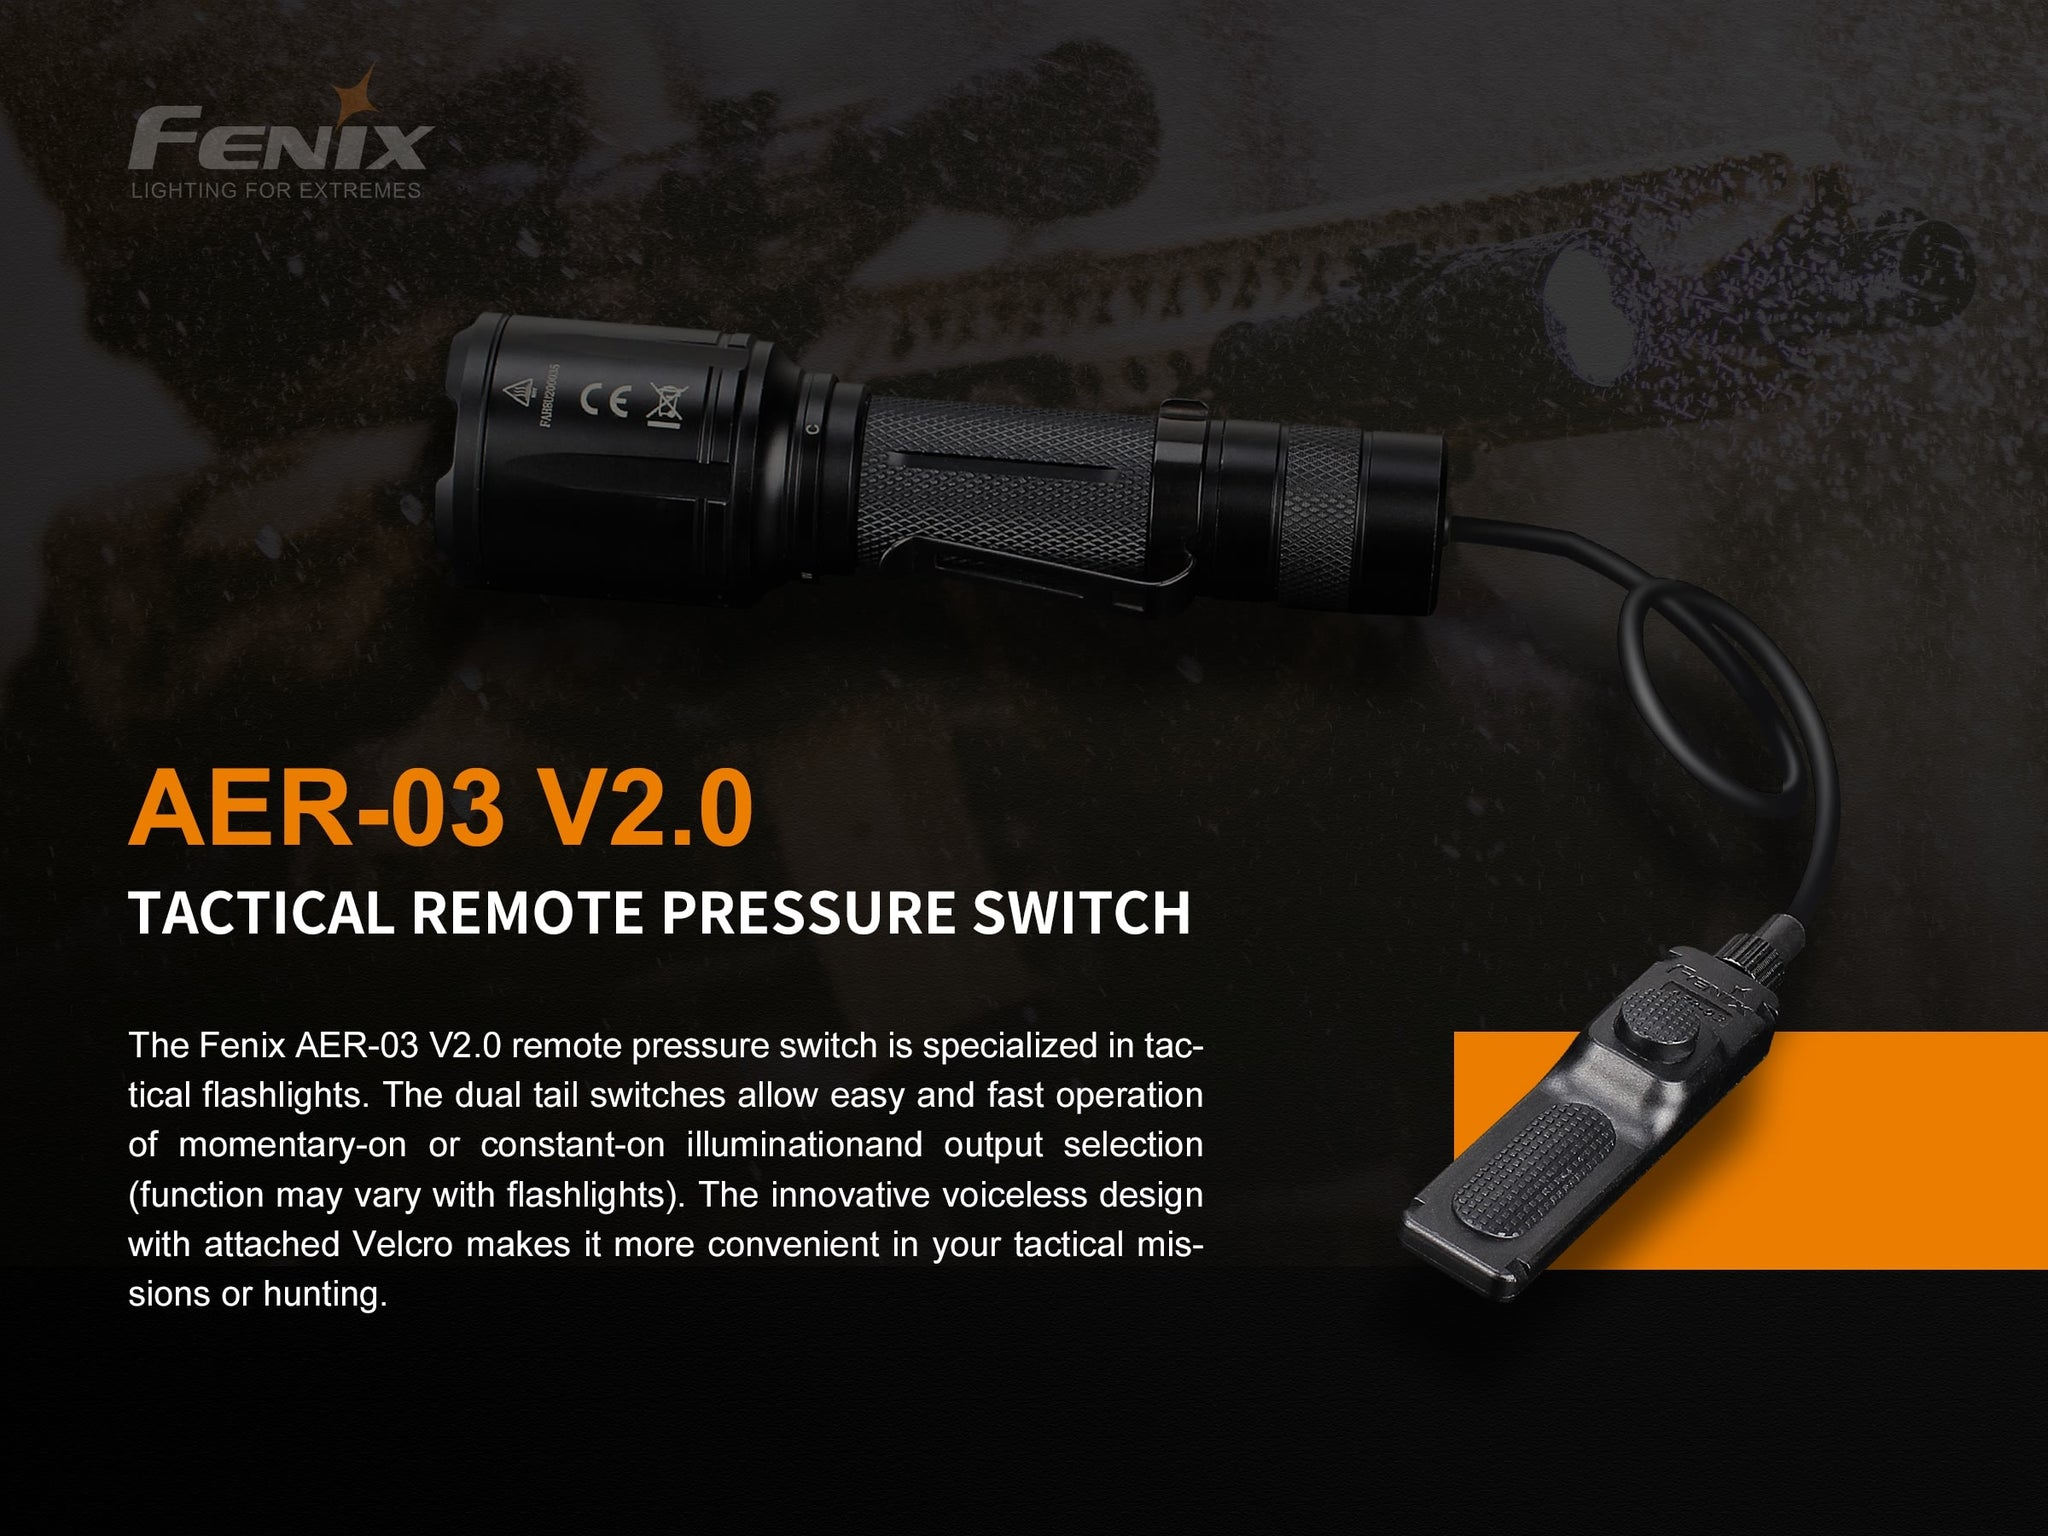 Fenix AER 03 V2 Tactical Remote Pressure Switch, Fenix Accessories in India, Fenix Remote Pressure Switch for Tactical Mounted Torches